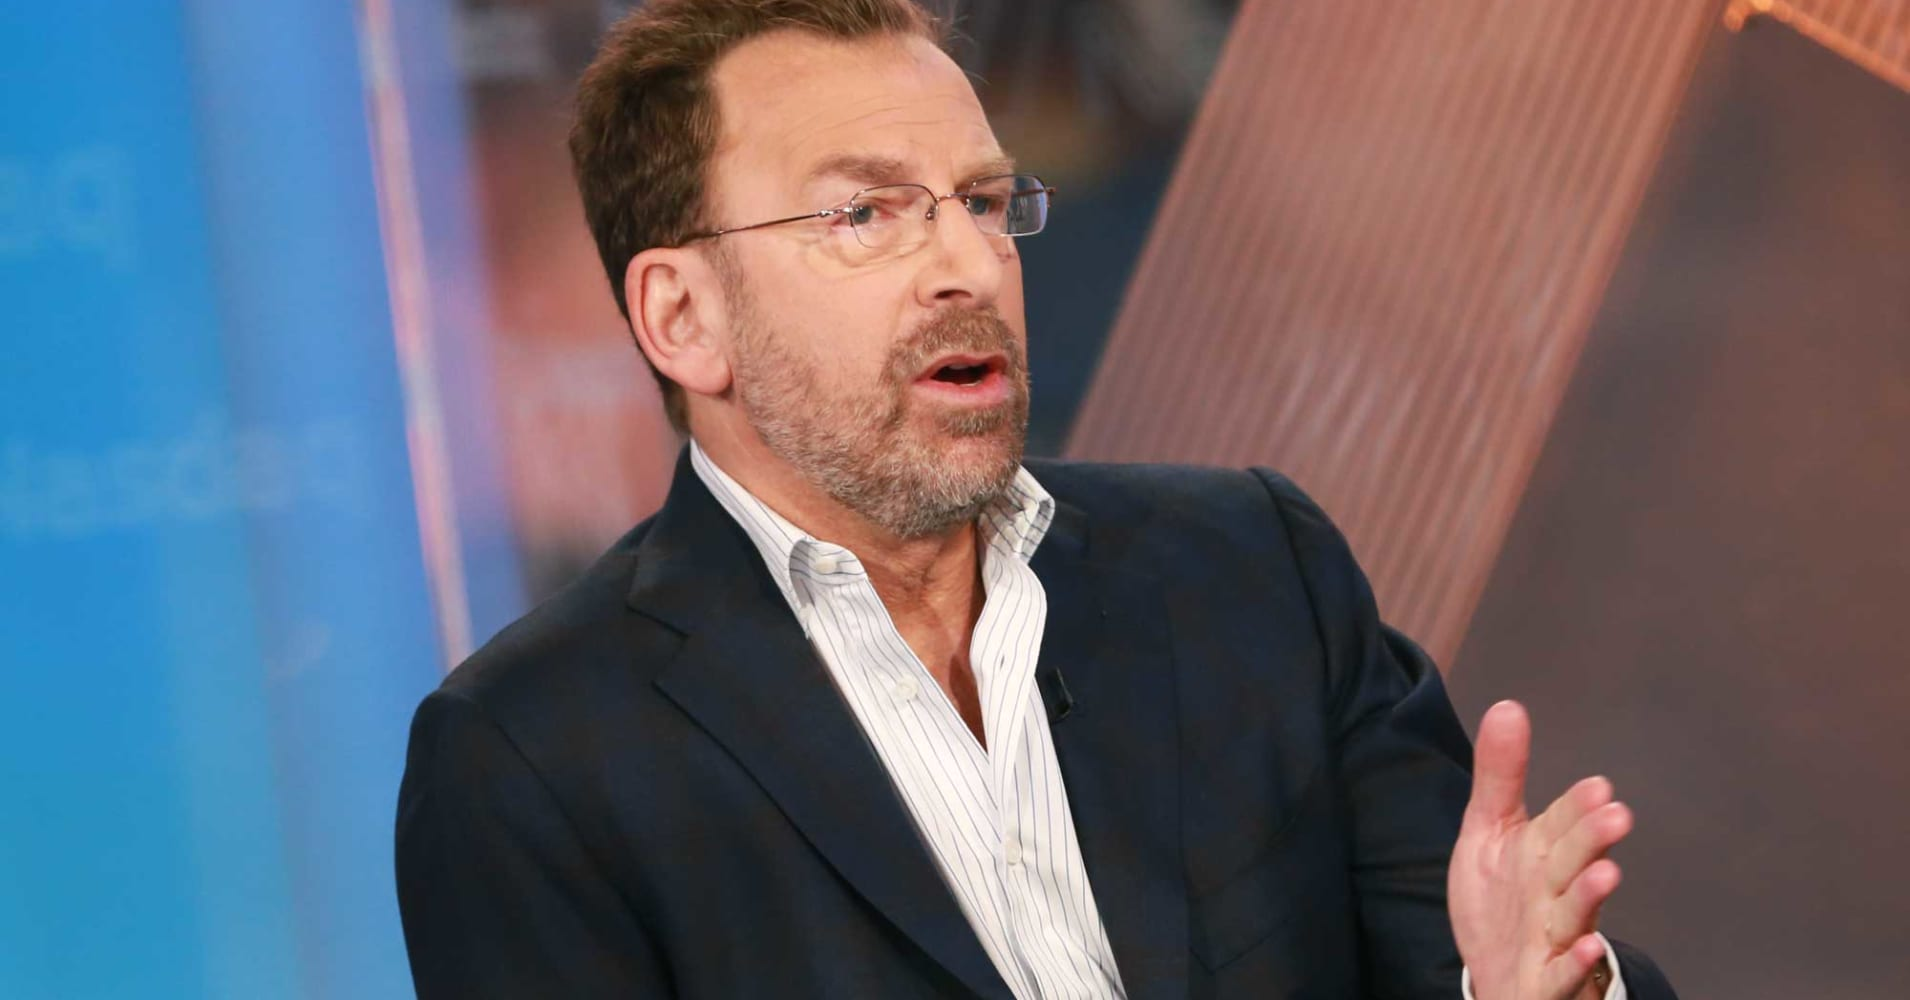 Streaming can attract the broadest audience ever to music, Edgar Bronfman says